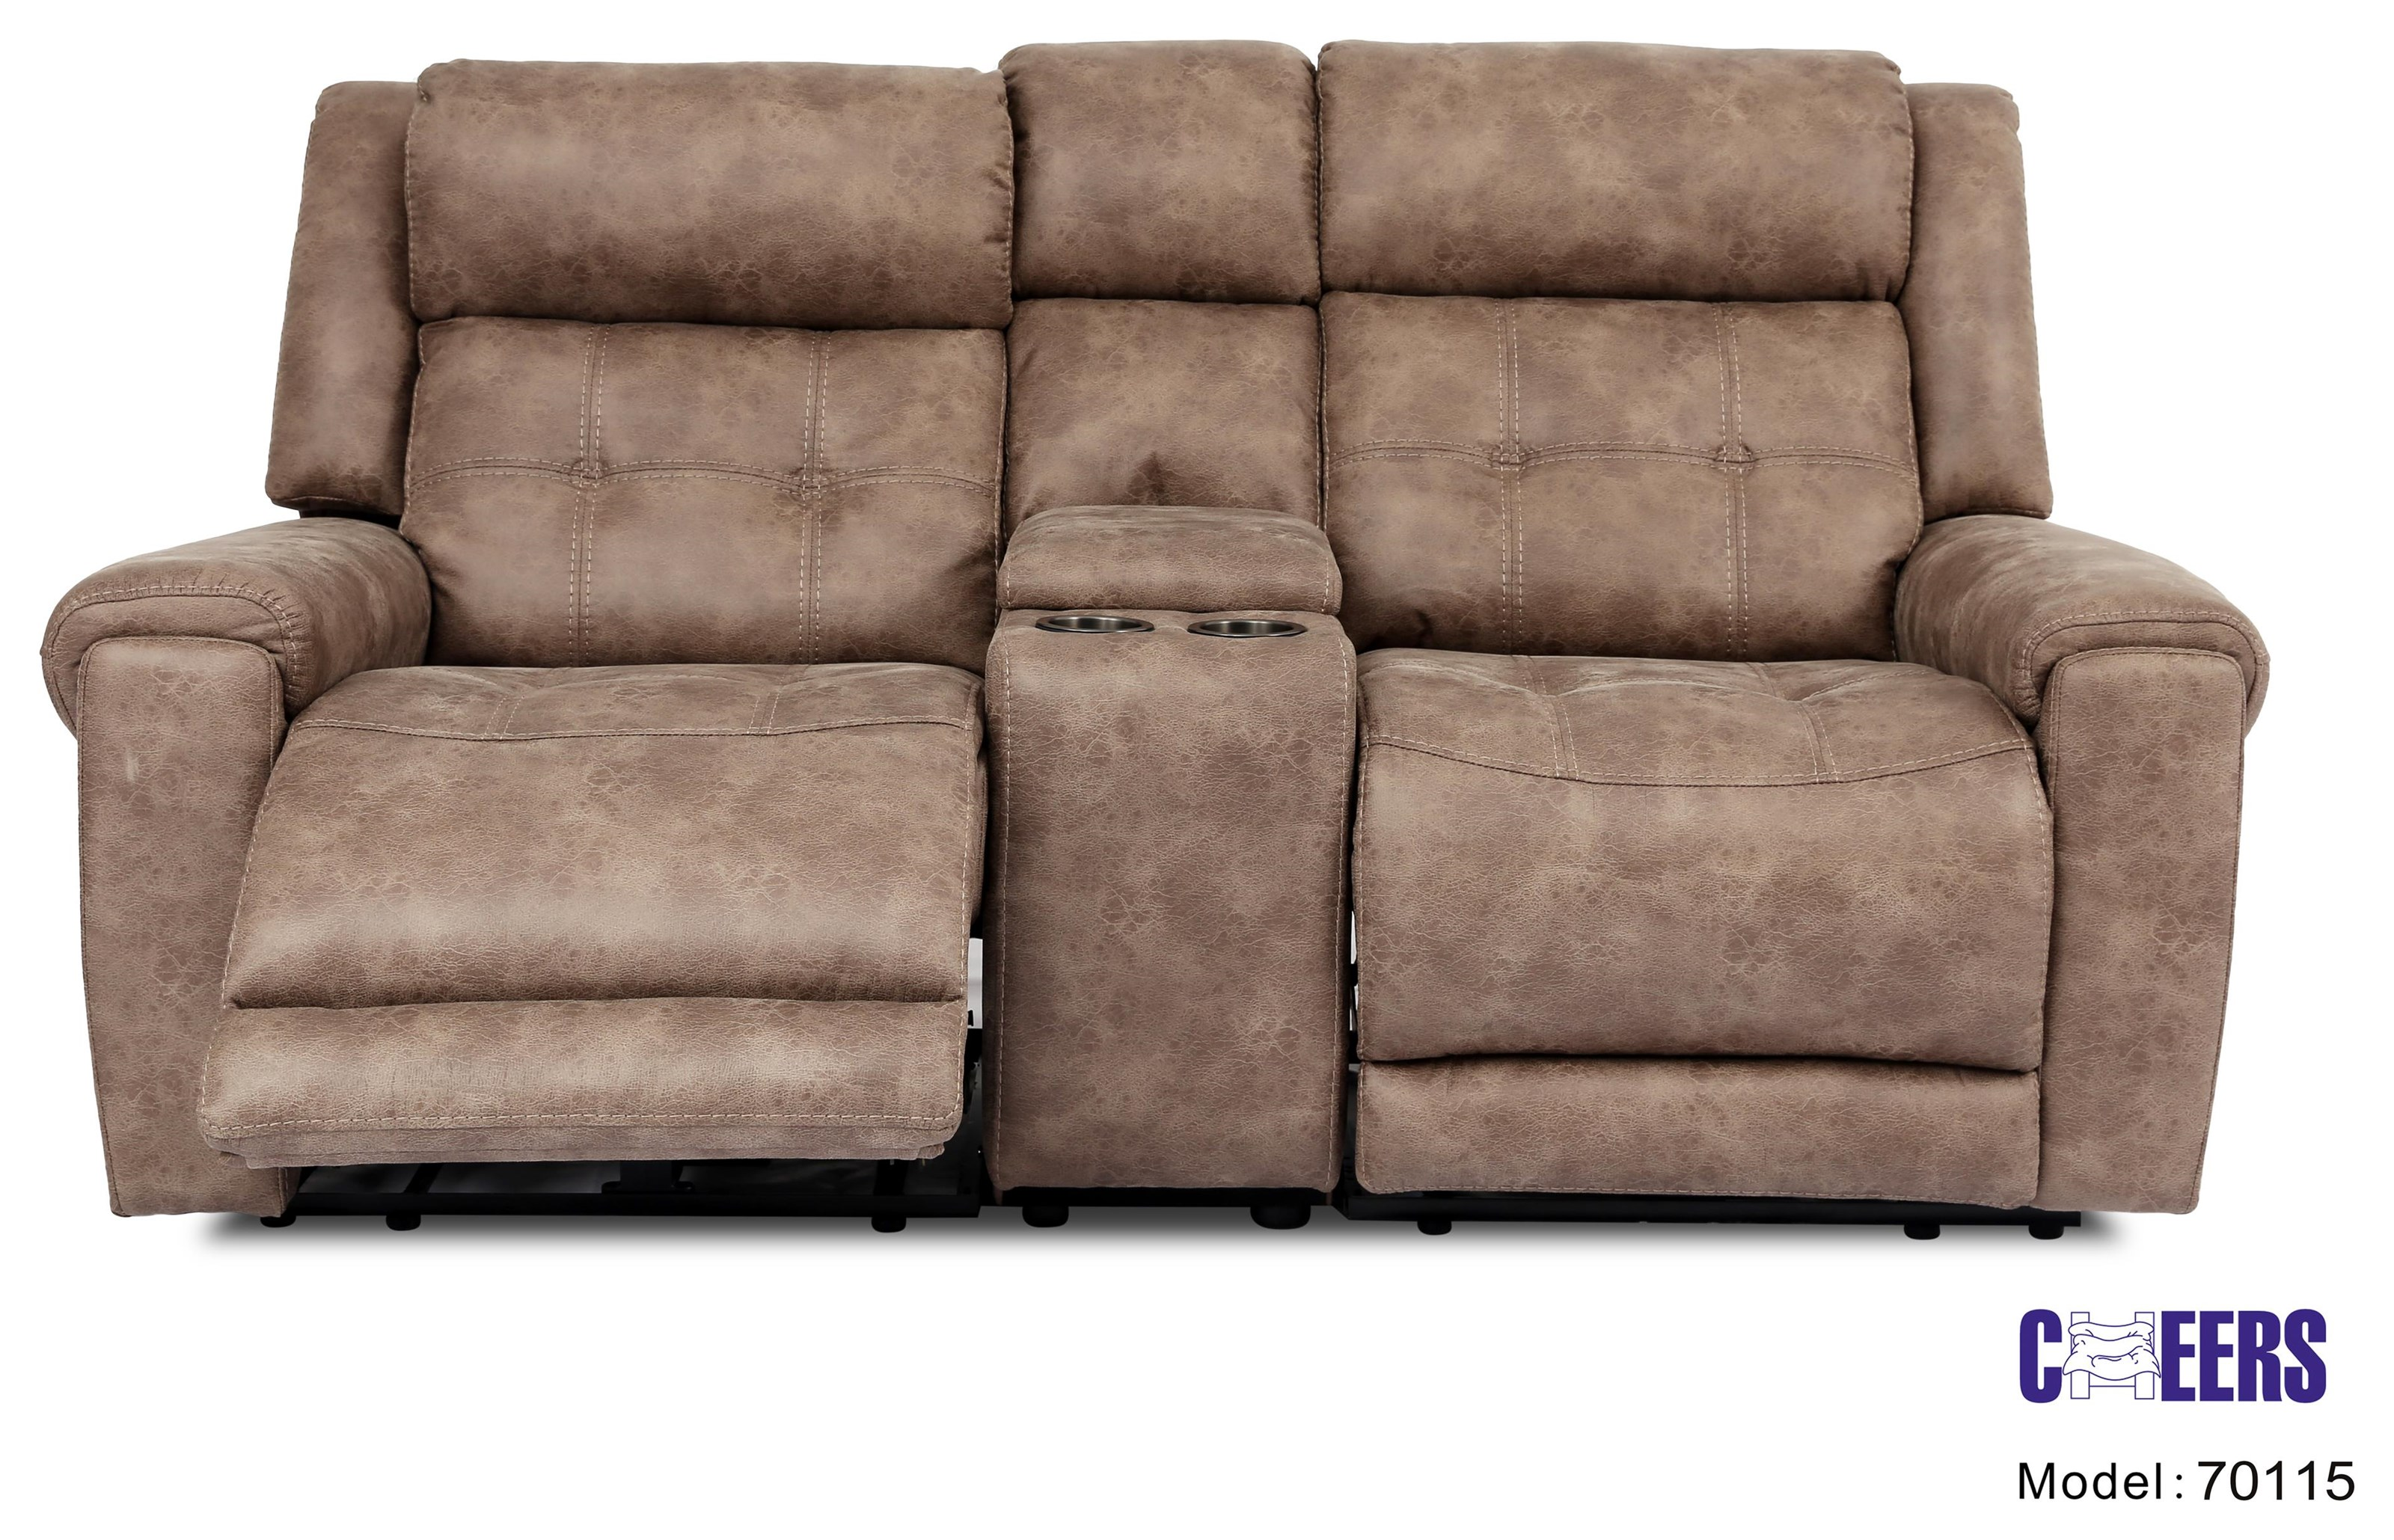 70115 Power Console Loveseat by Cheers at Westrich Furniture & Appliances